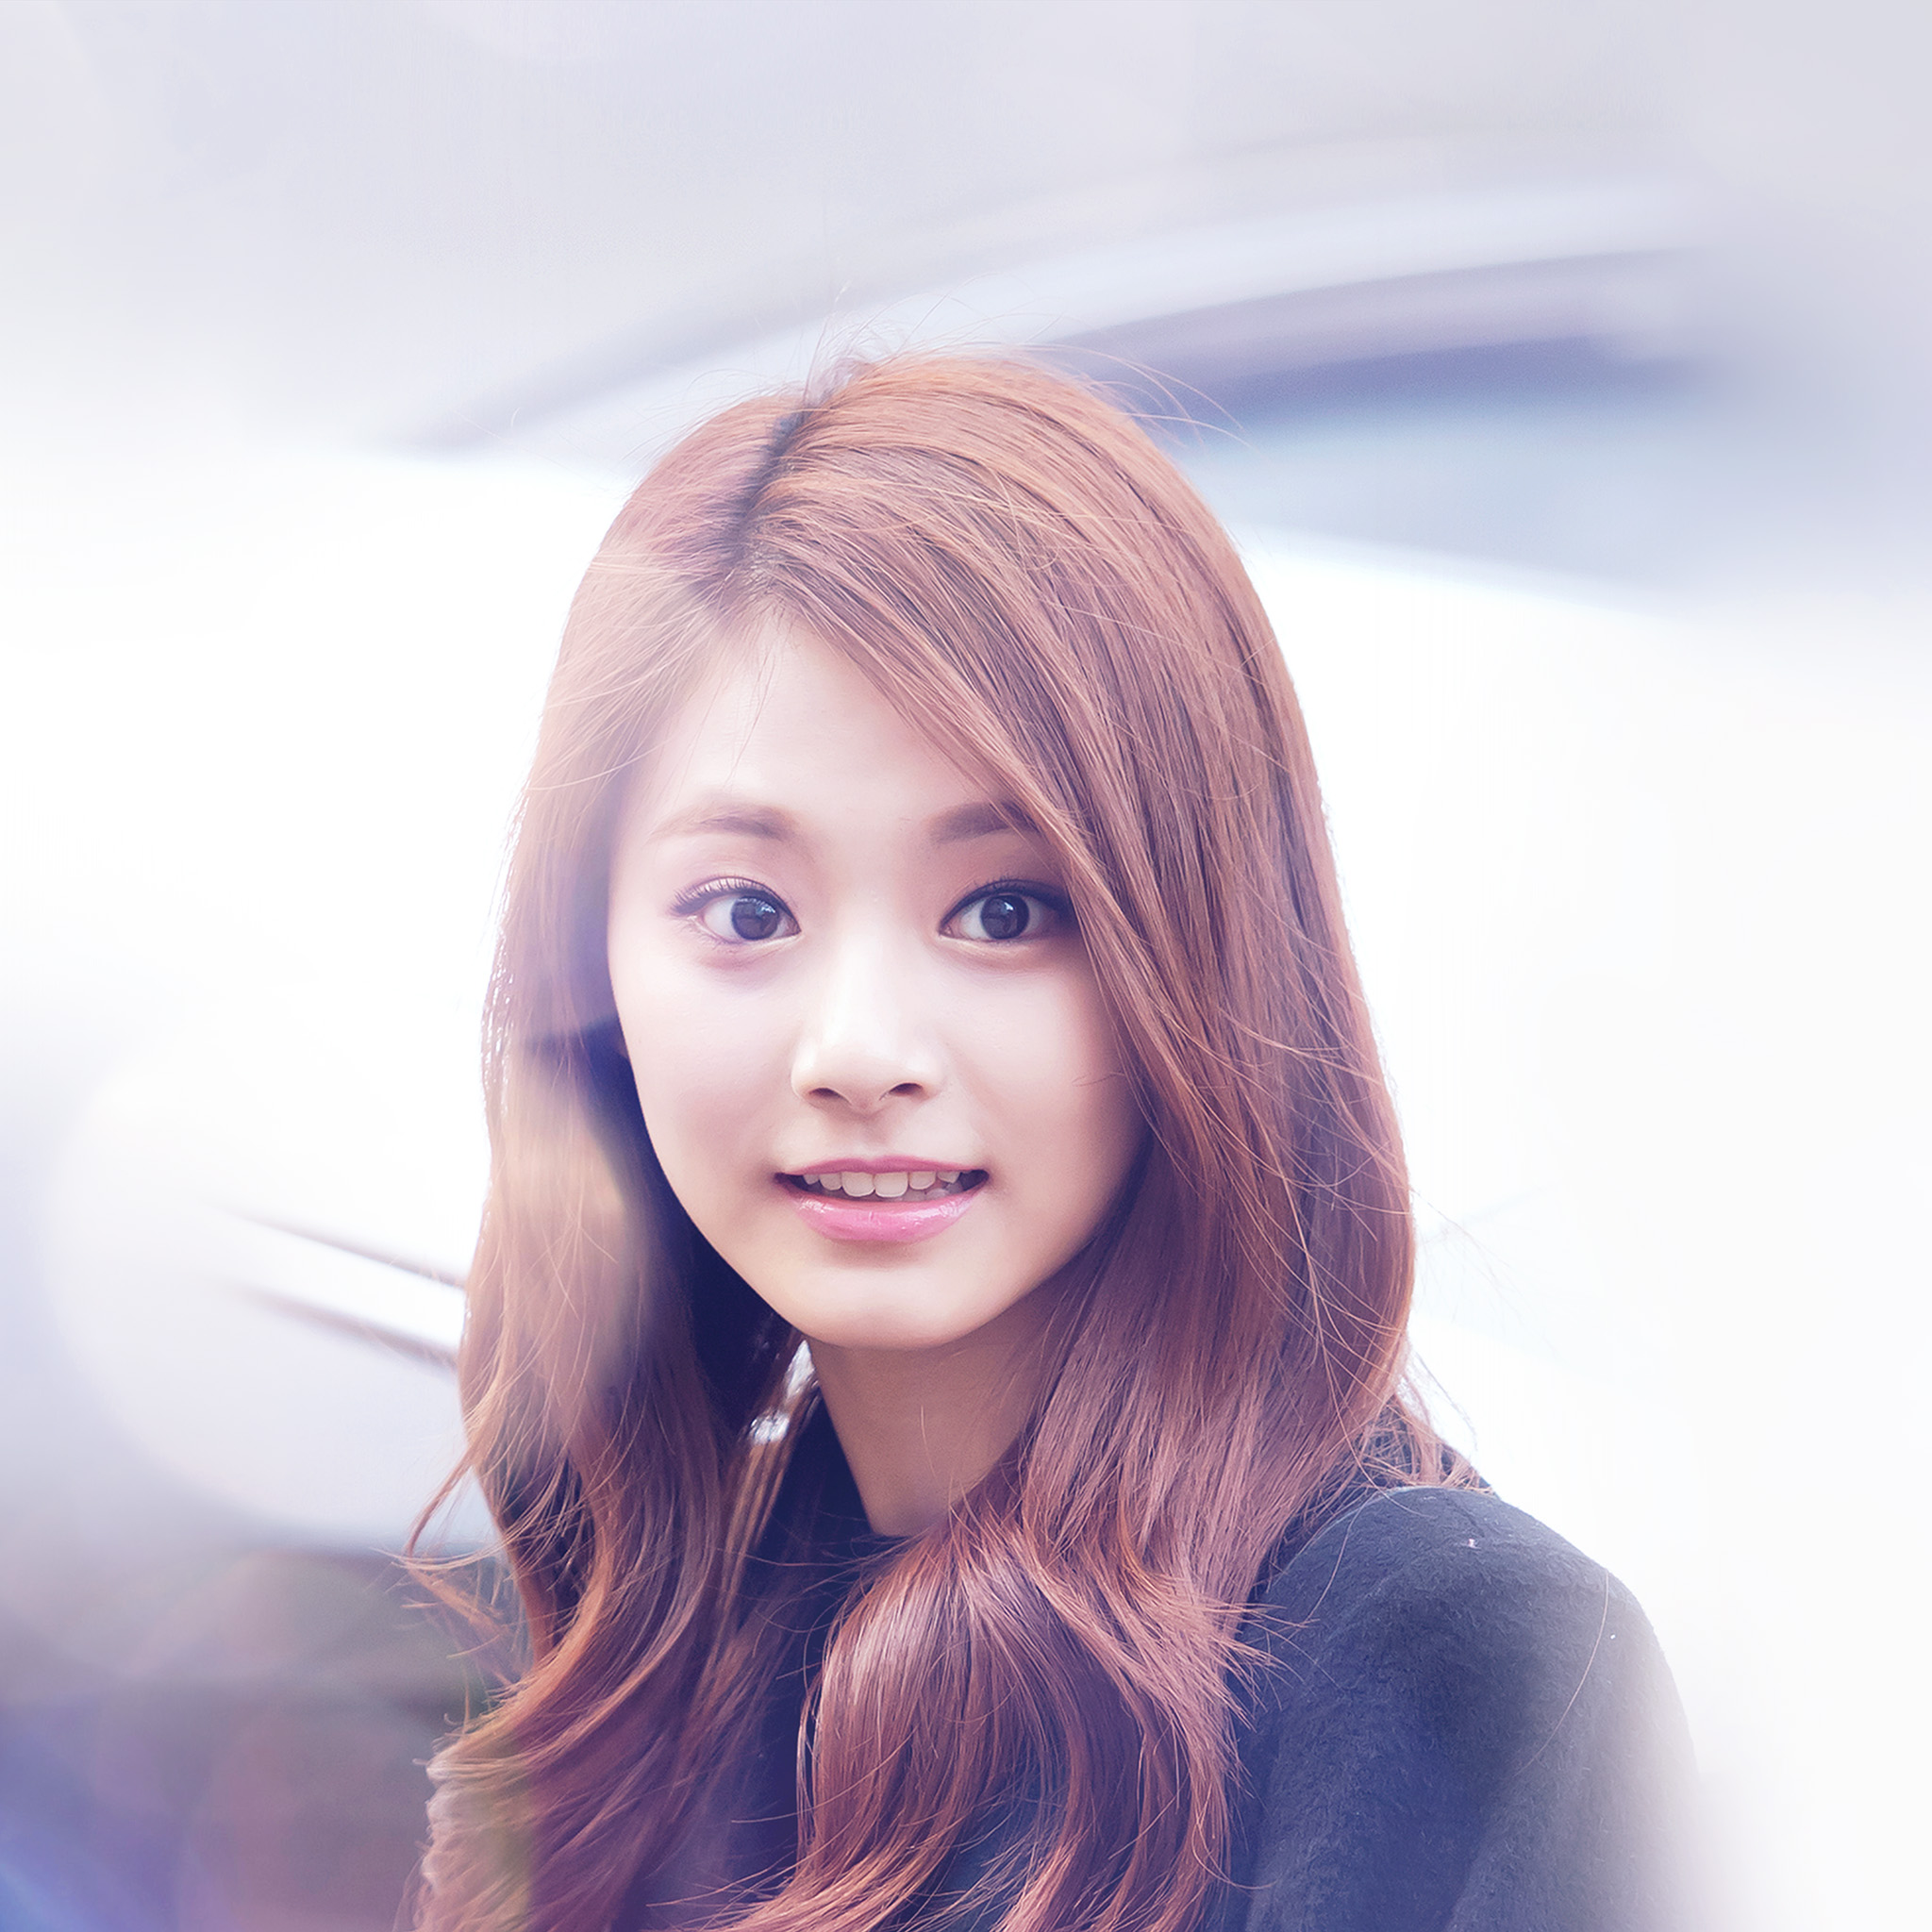 hh33-tzuyu-twice-smile-cute-kpop-jyp-flare-wallpaper